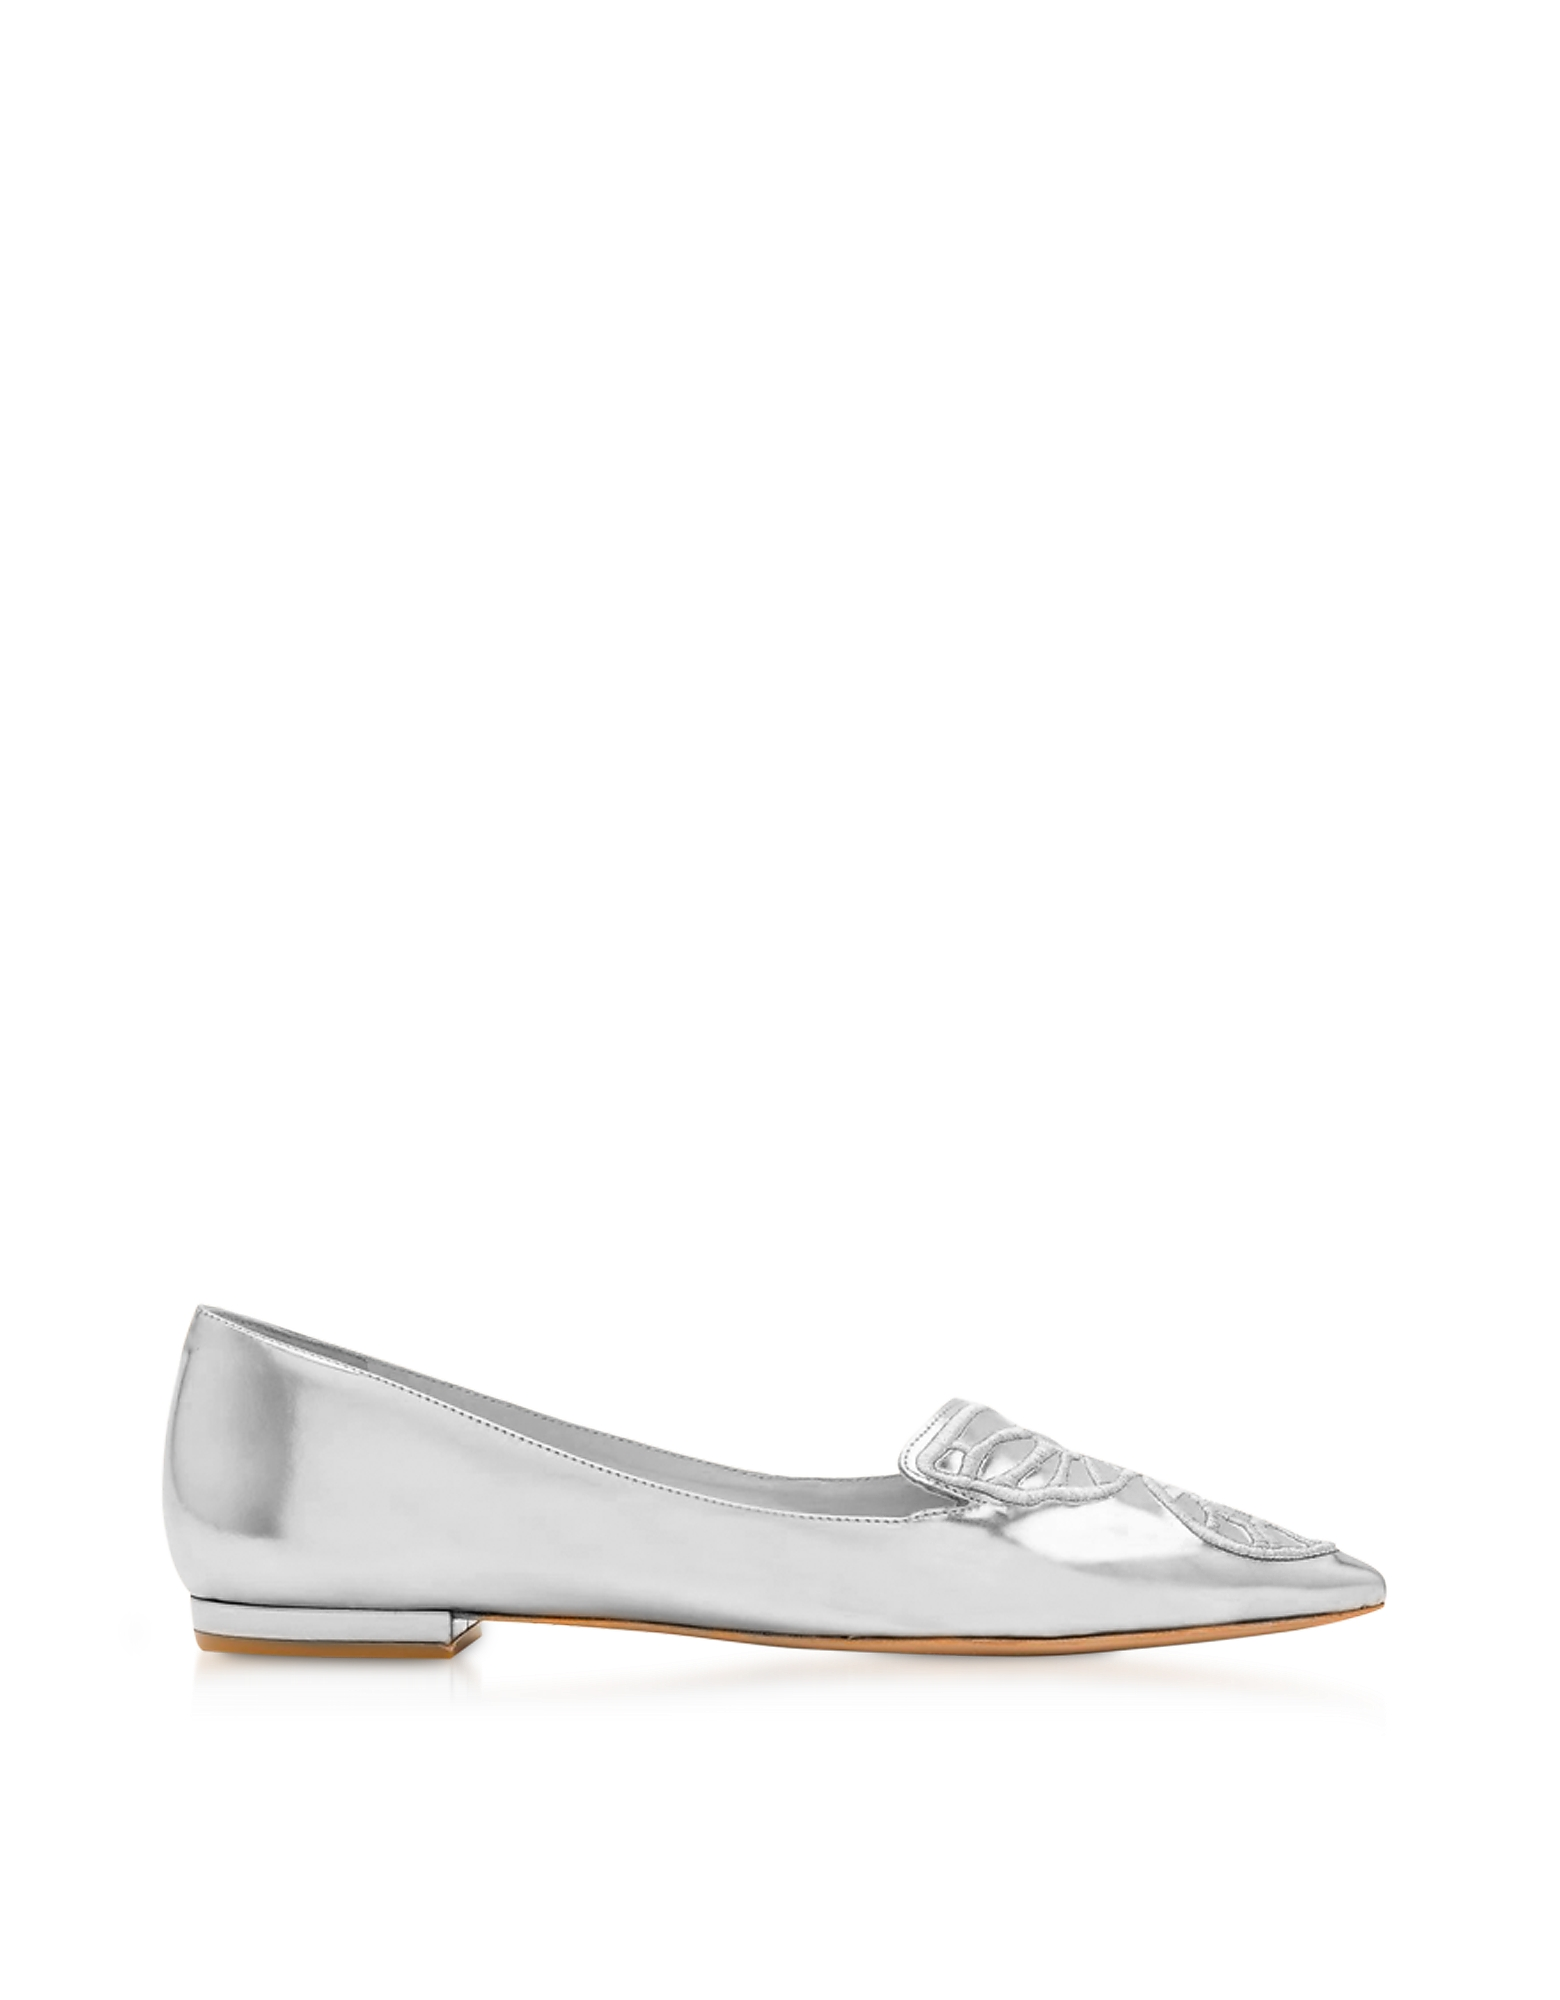 Sophia Webster Shoes, Silver Laminated Leather Bibi Butterfly Flat Ballerinas